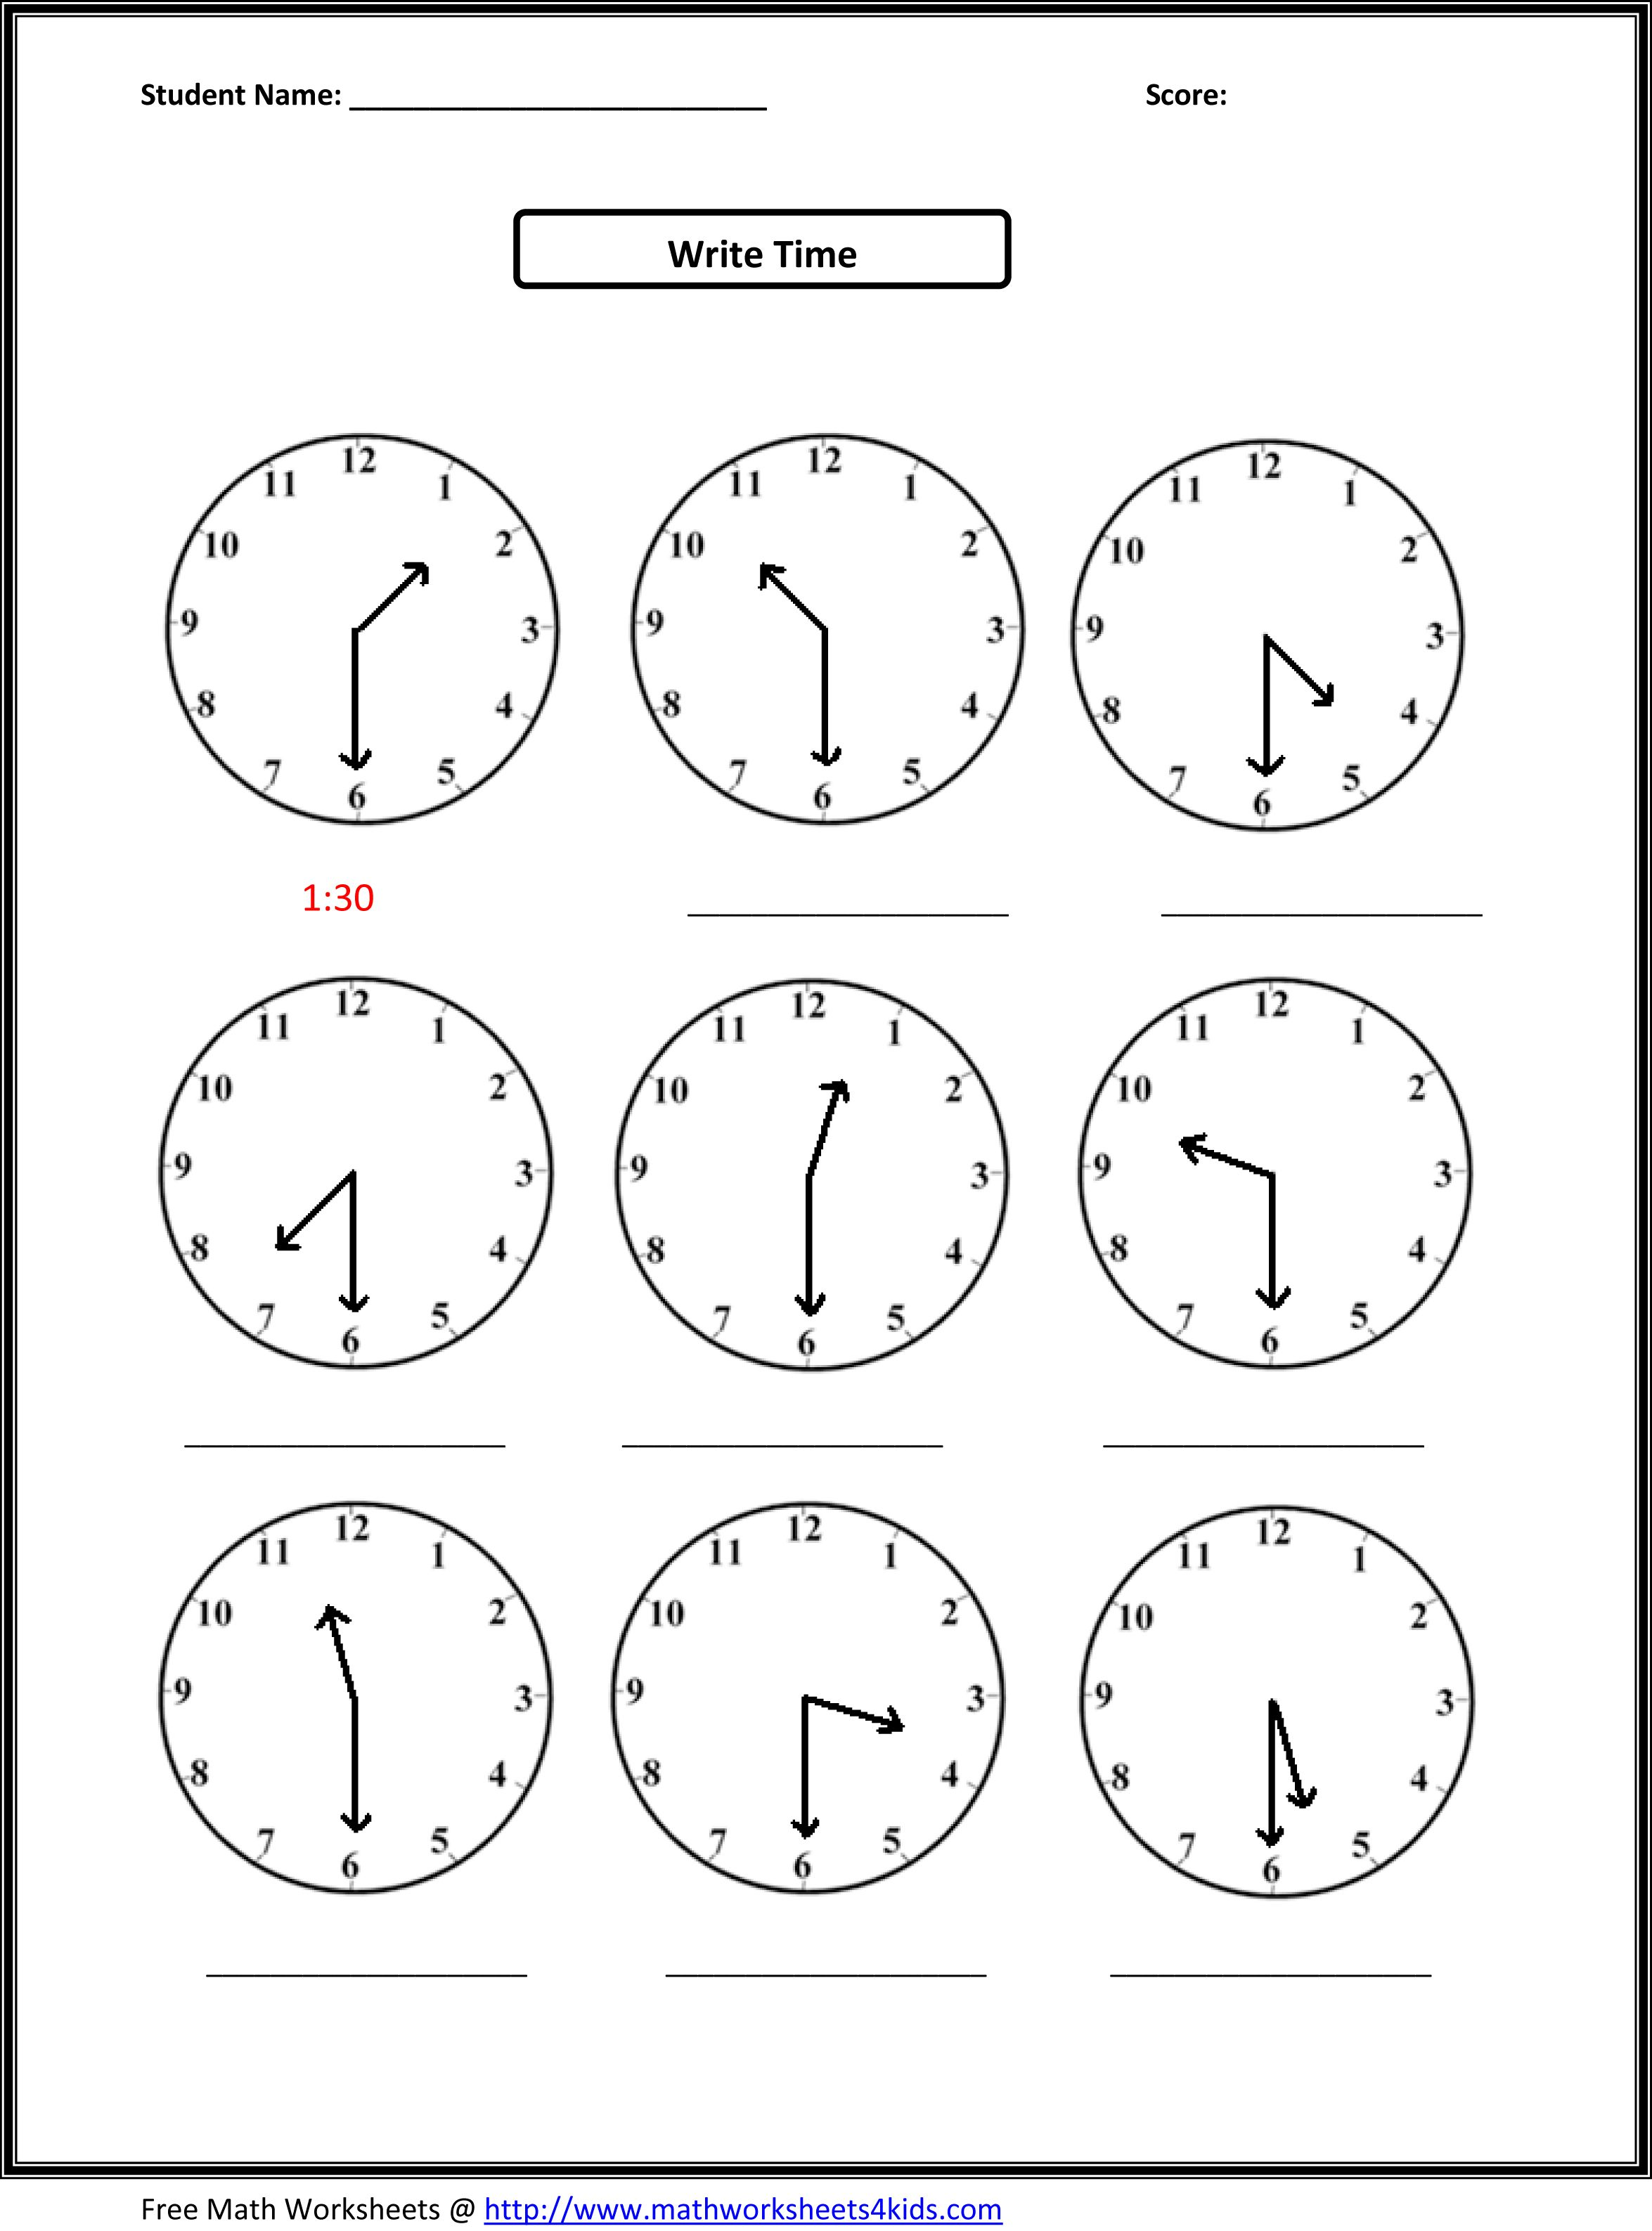 Proatmealus  Prepossessing Worksheet On Time For Grade   Reocurent With Gorgeous Free Printable Telling Time Worksheets Nd Grade  Reocurent With Cool Phonics Worksheets Free Also Free Printable Main Idea Worksheets In Addition Beatitudes Worksheet And Rd Grade Word Problems Worksheet As Well As Factoring Word Problems Worksheet Additionally Worksheet Metric Conversions From Reocurentcom With Proatmealus  Gorgeous Worksheet On Time For Grade   Reocurent With Cool Free Printable Telling Time Worksheets Nd Grade  Reocurent And Prepossessing Phonics Worksheets Free Also Free Printable Main Idea Worksheets In Addition Beatitudes Worksheet From Reocurentcom